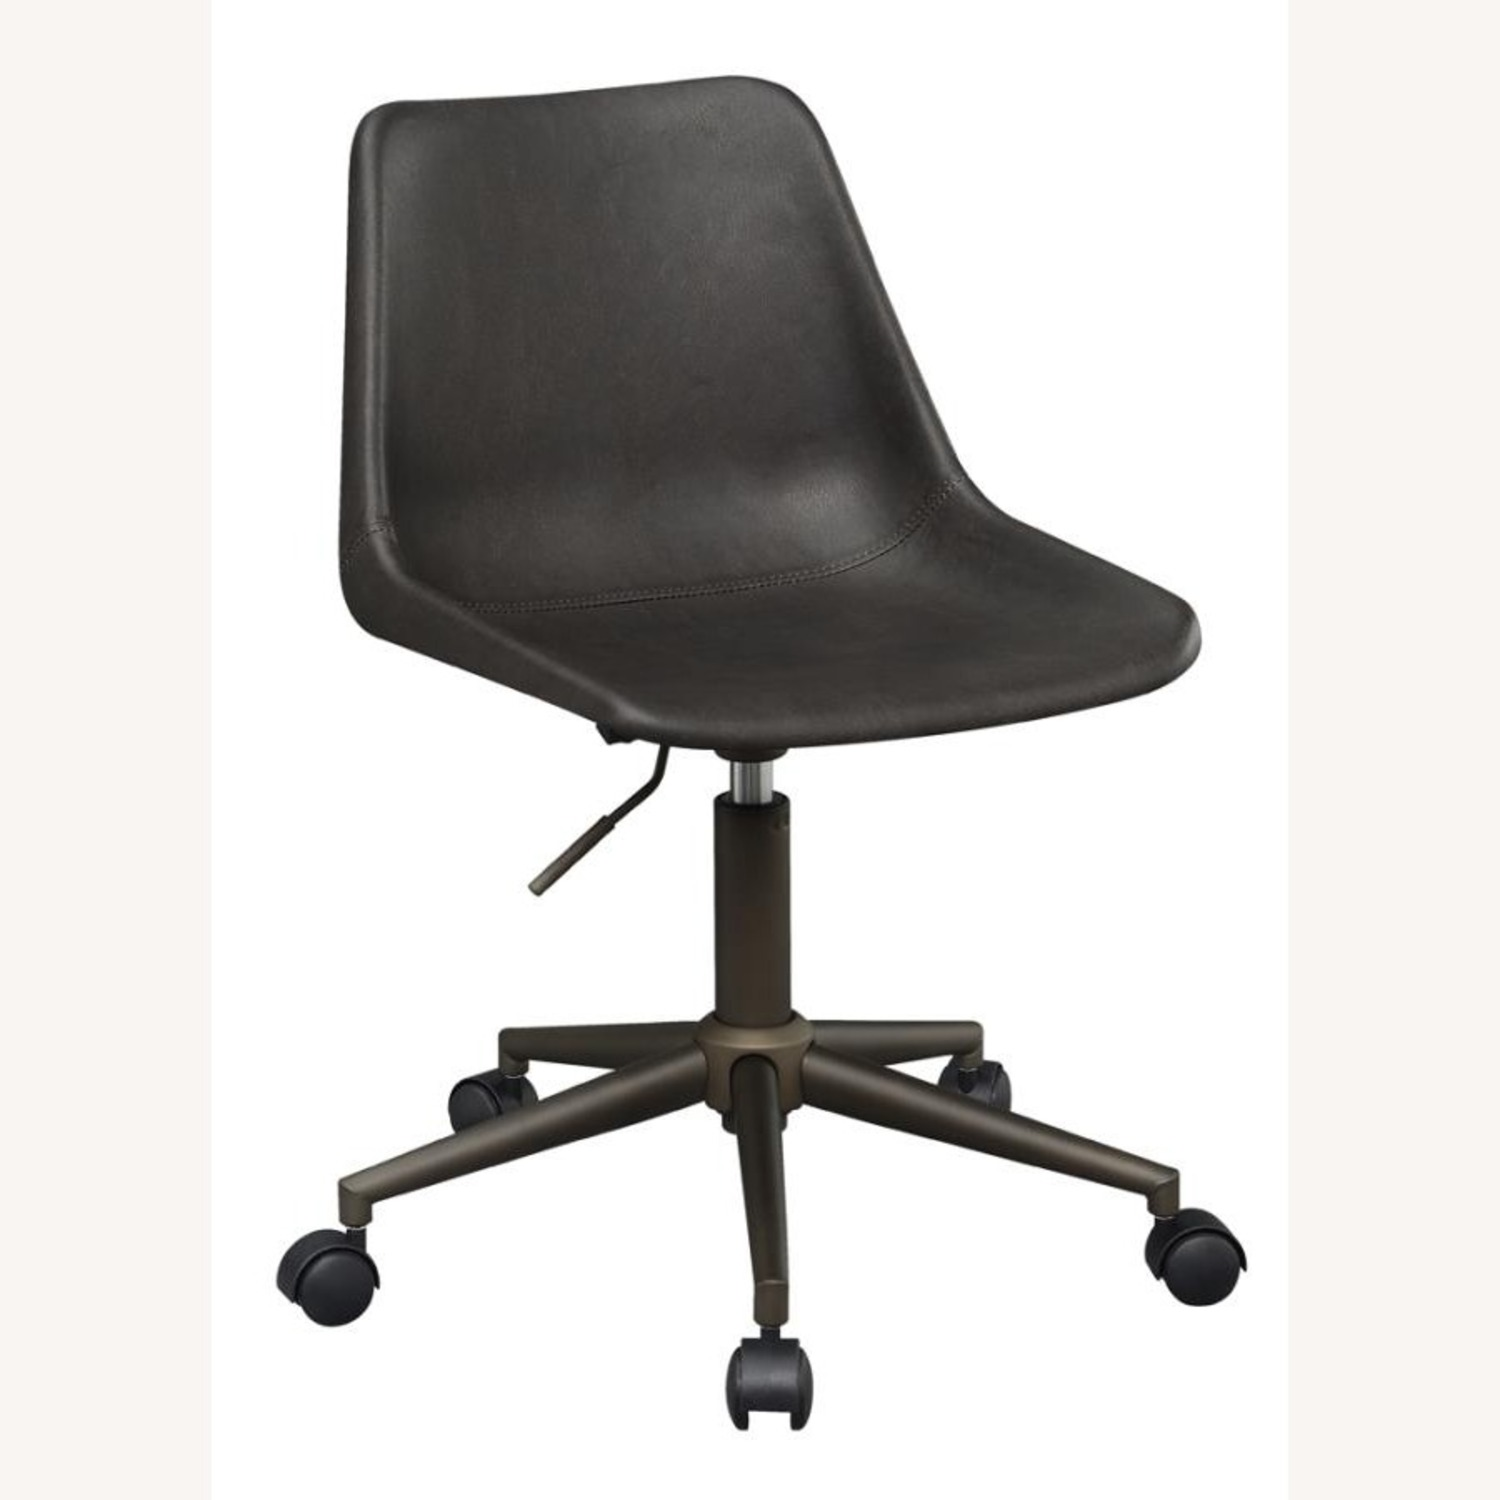 Office Chair In Brown Leatherette & Bronze Base - image-0